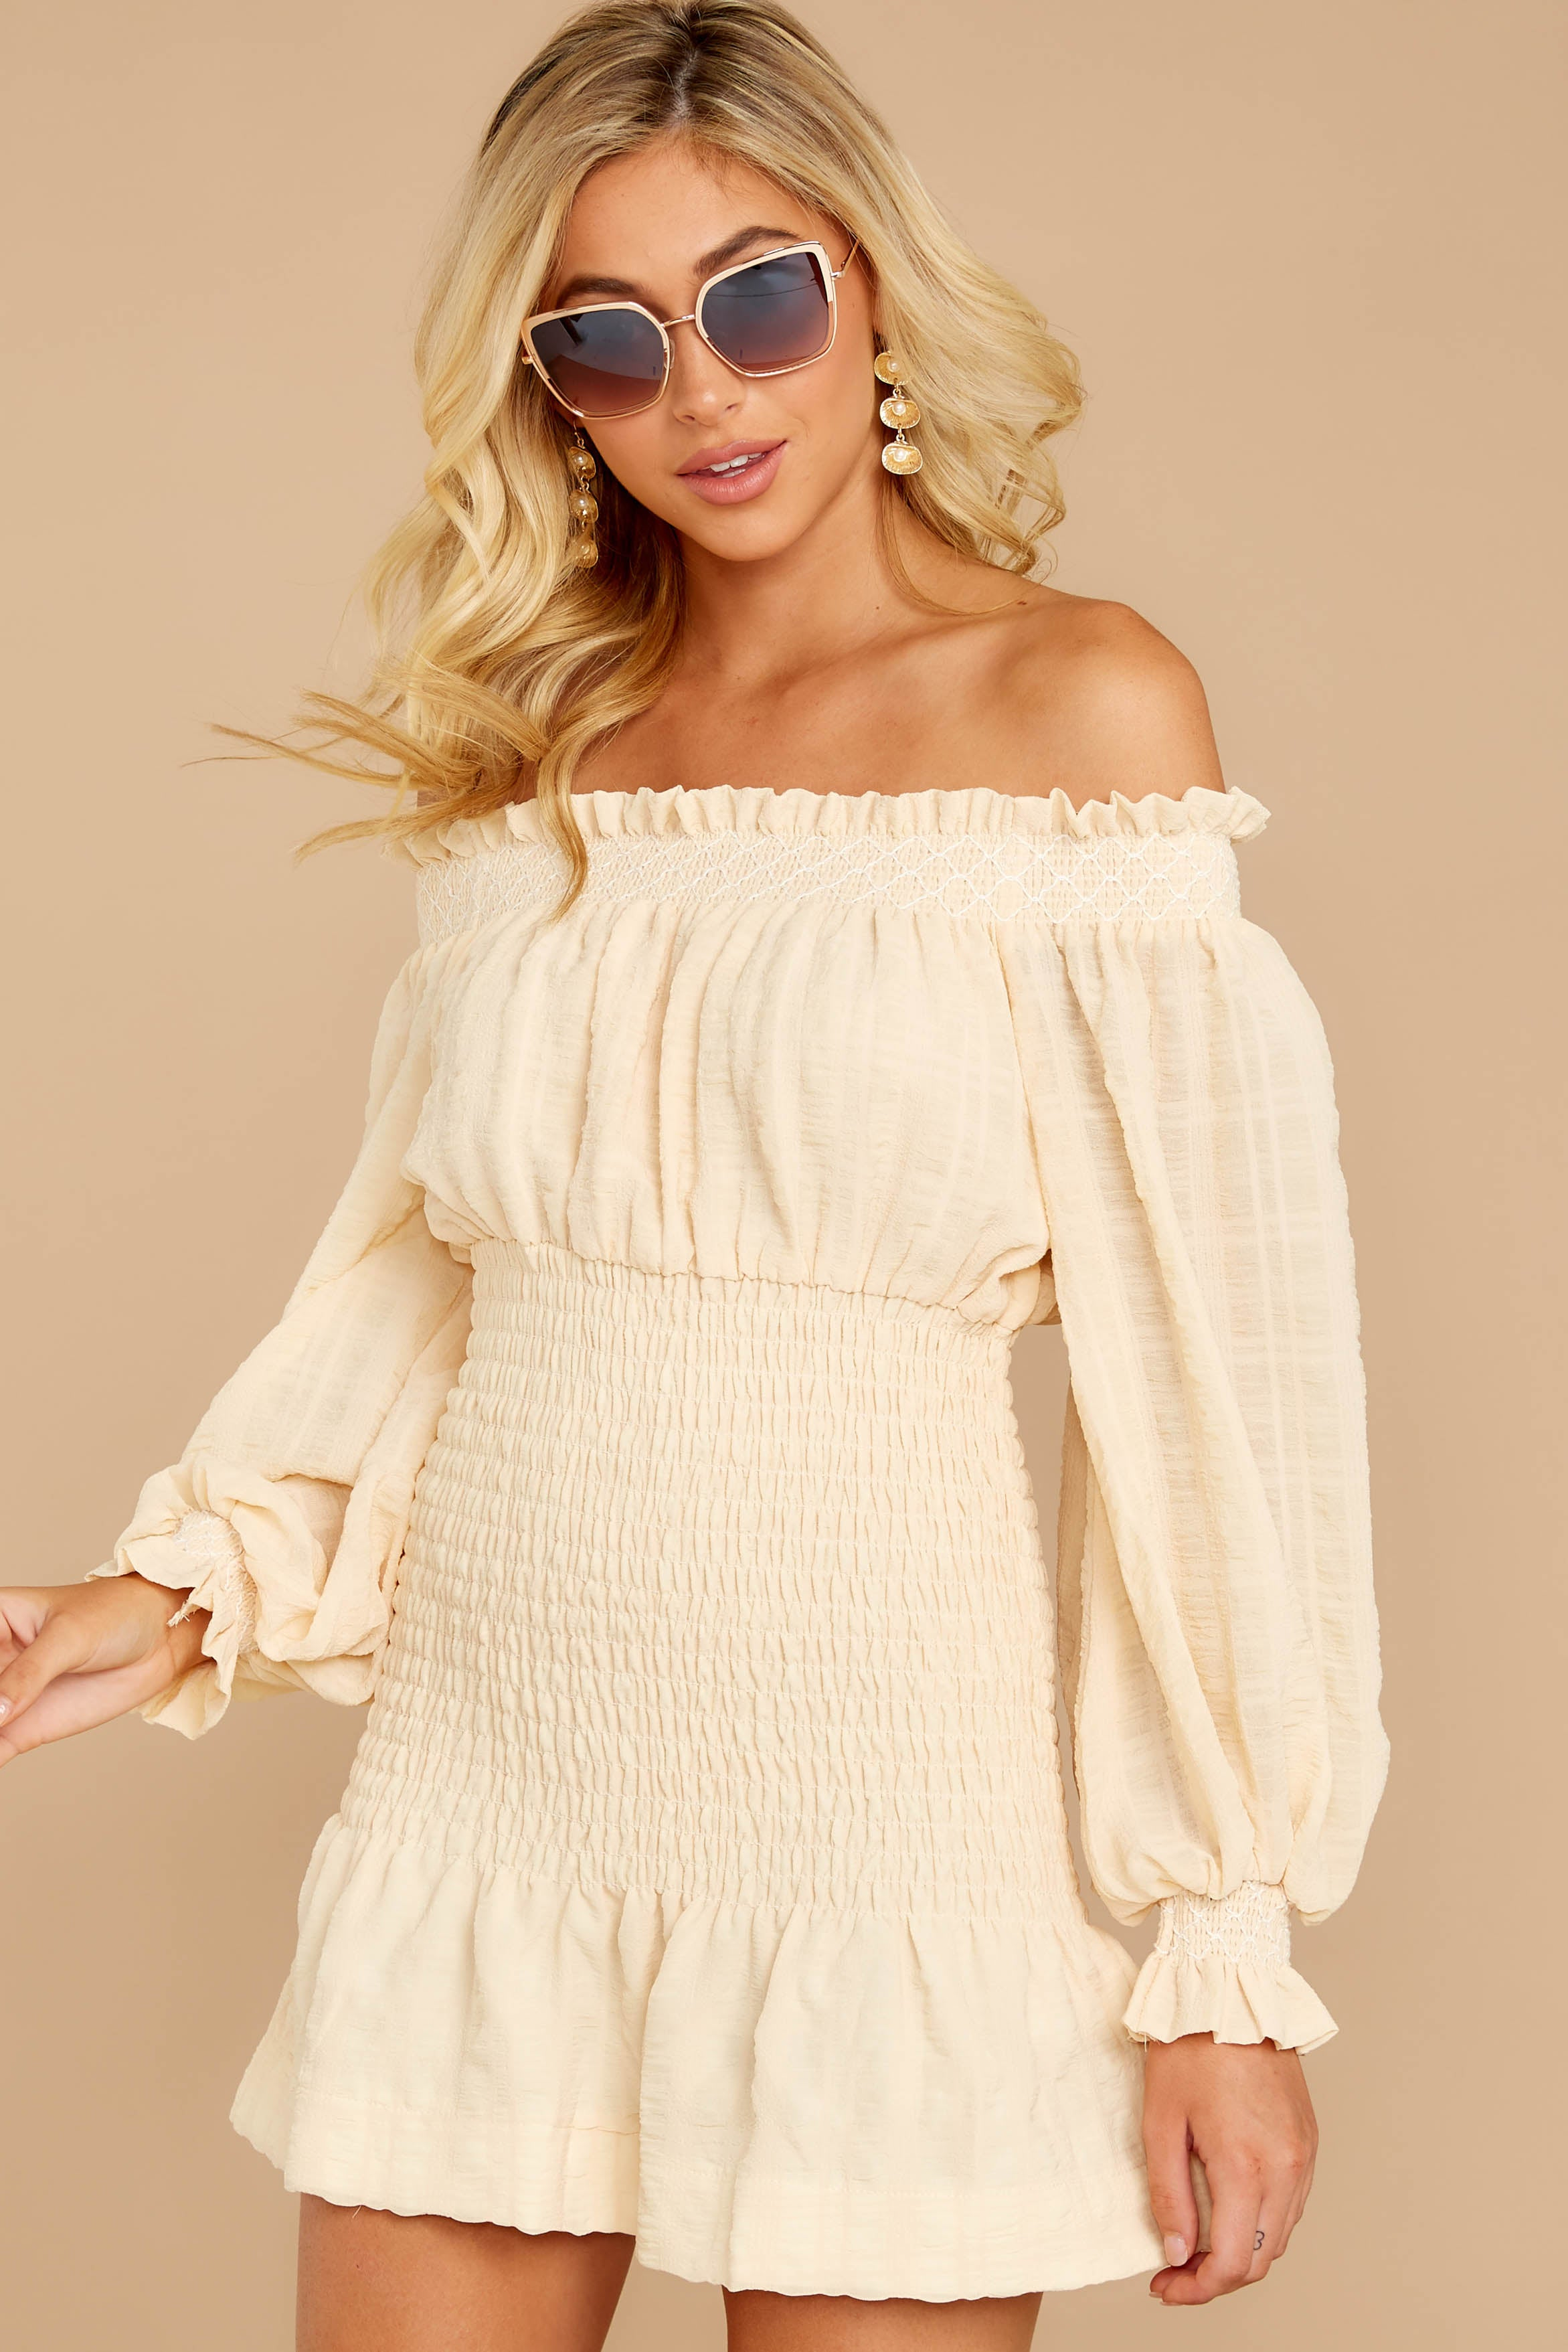 5 Heart In Havana Vanilla Cream Off The Shoulder Dress at reddressboutique.com